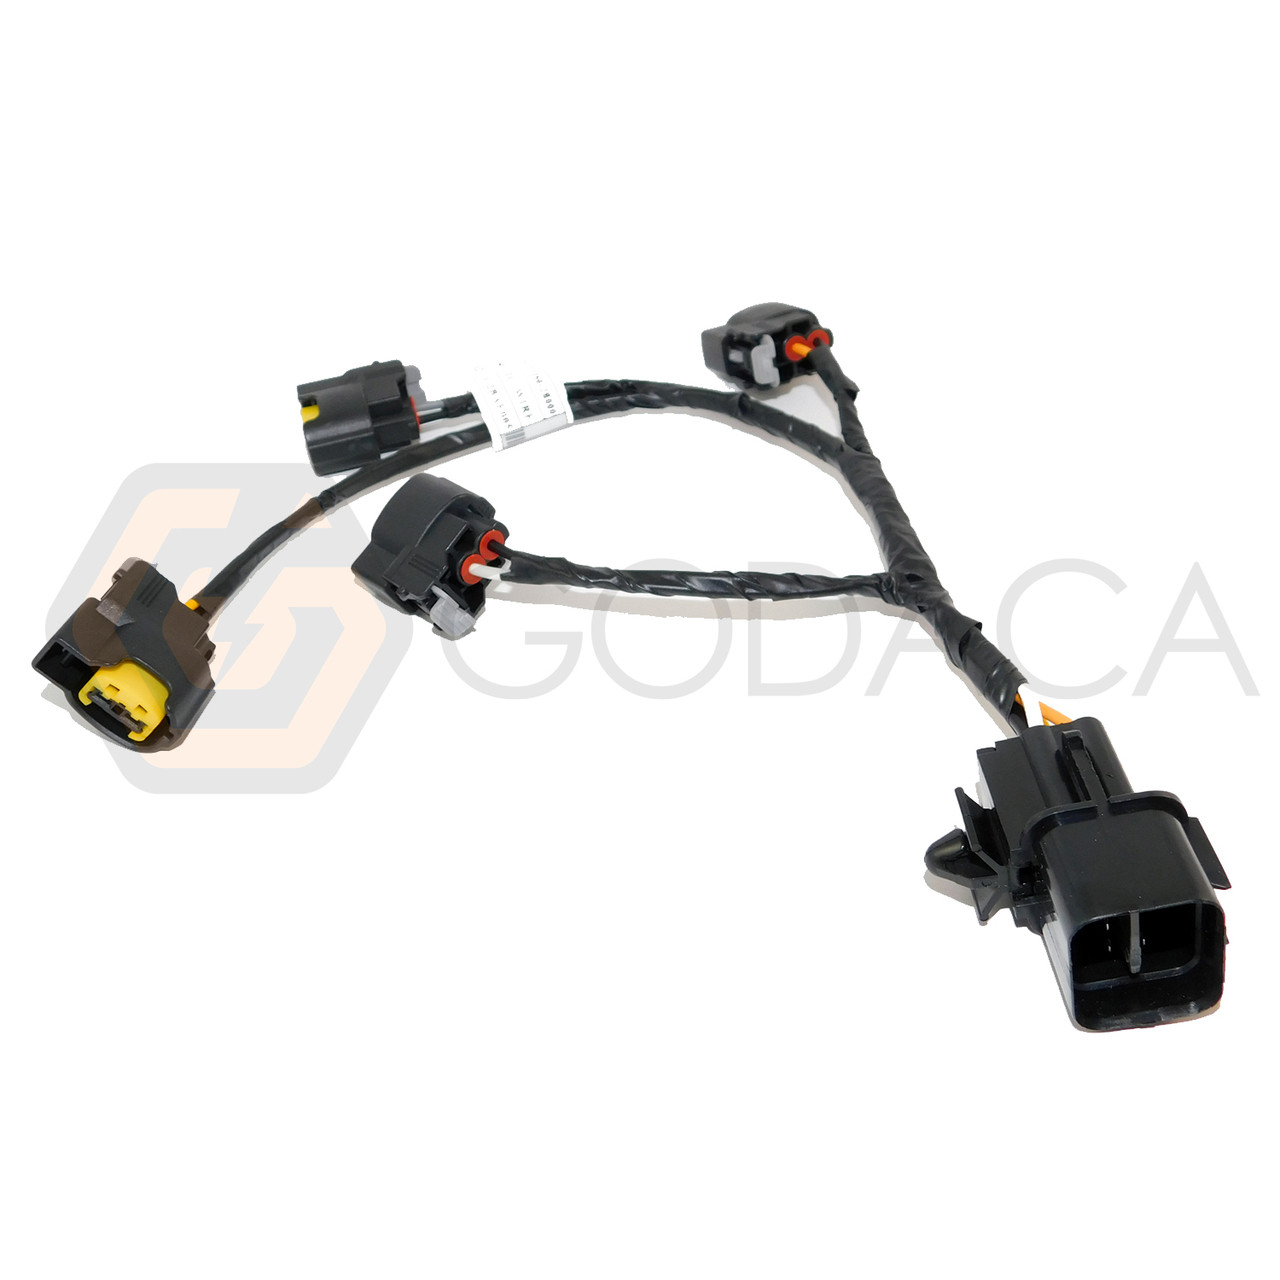 1x Wiring Harness for Hyundai Kia Ignition Coil 27350-2B000 on